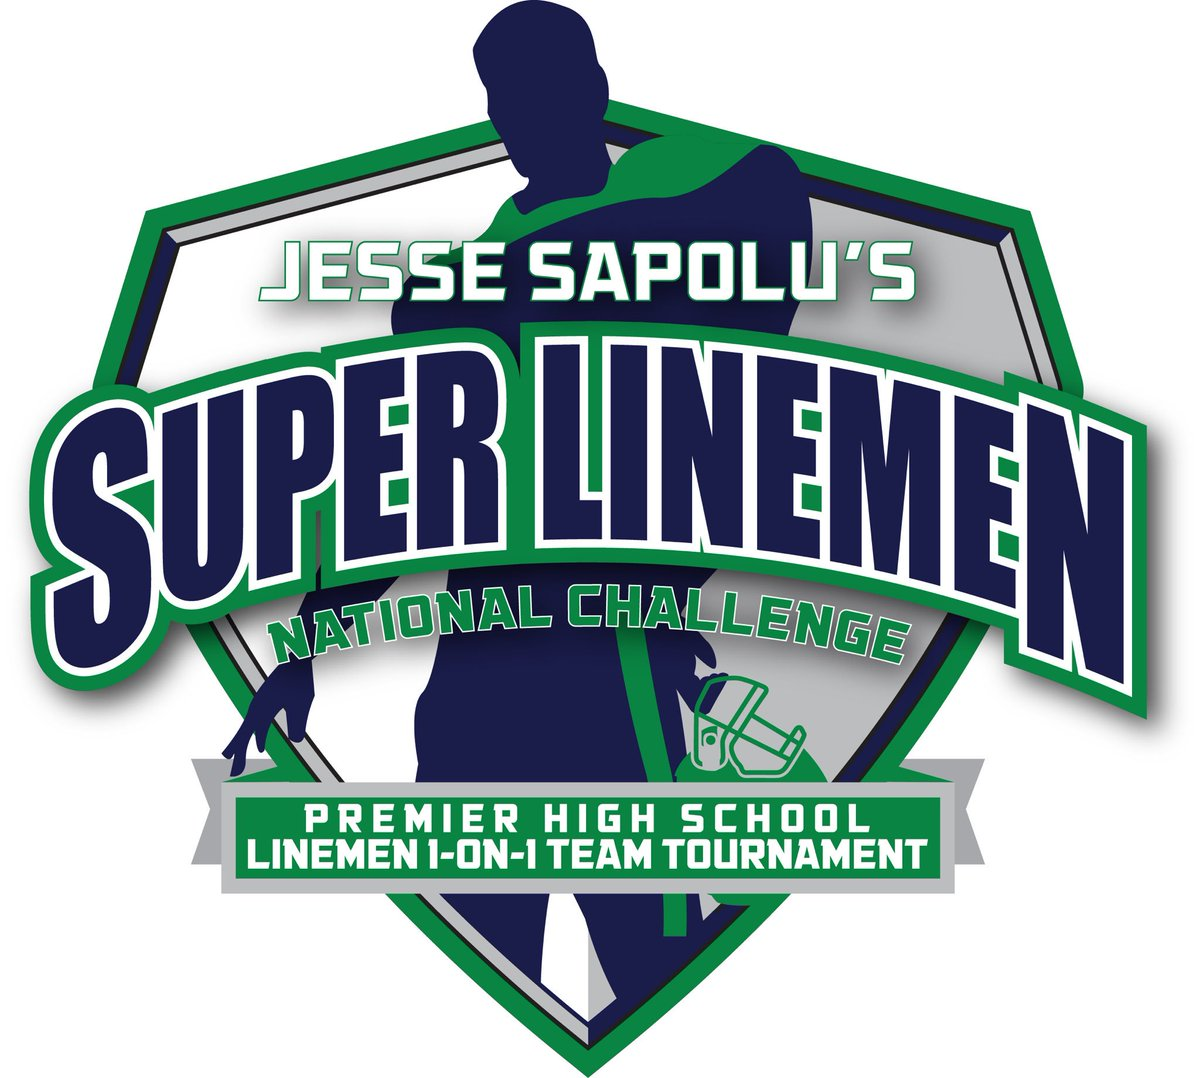 @SuperLinemen is Completely full with over 350 Linemen this Saturday. Competition will be 🔥 and Sportsmanship is Required. We do what we do.